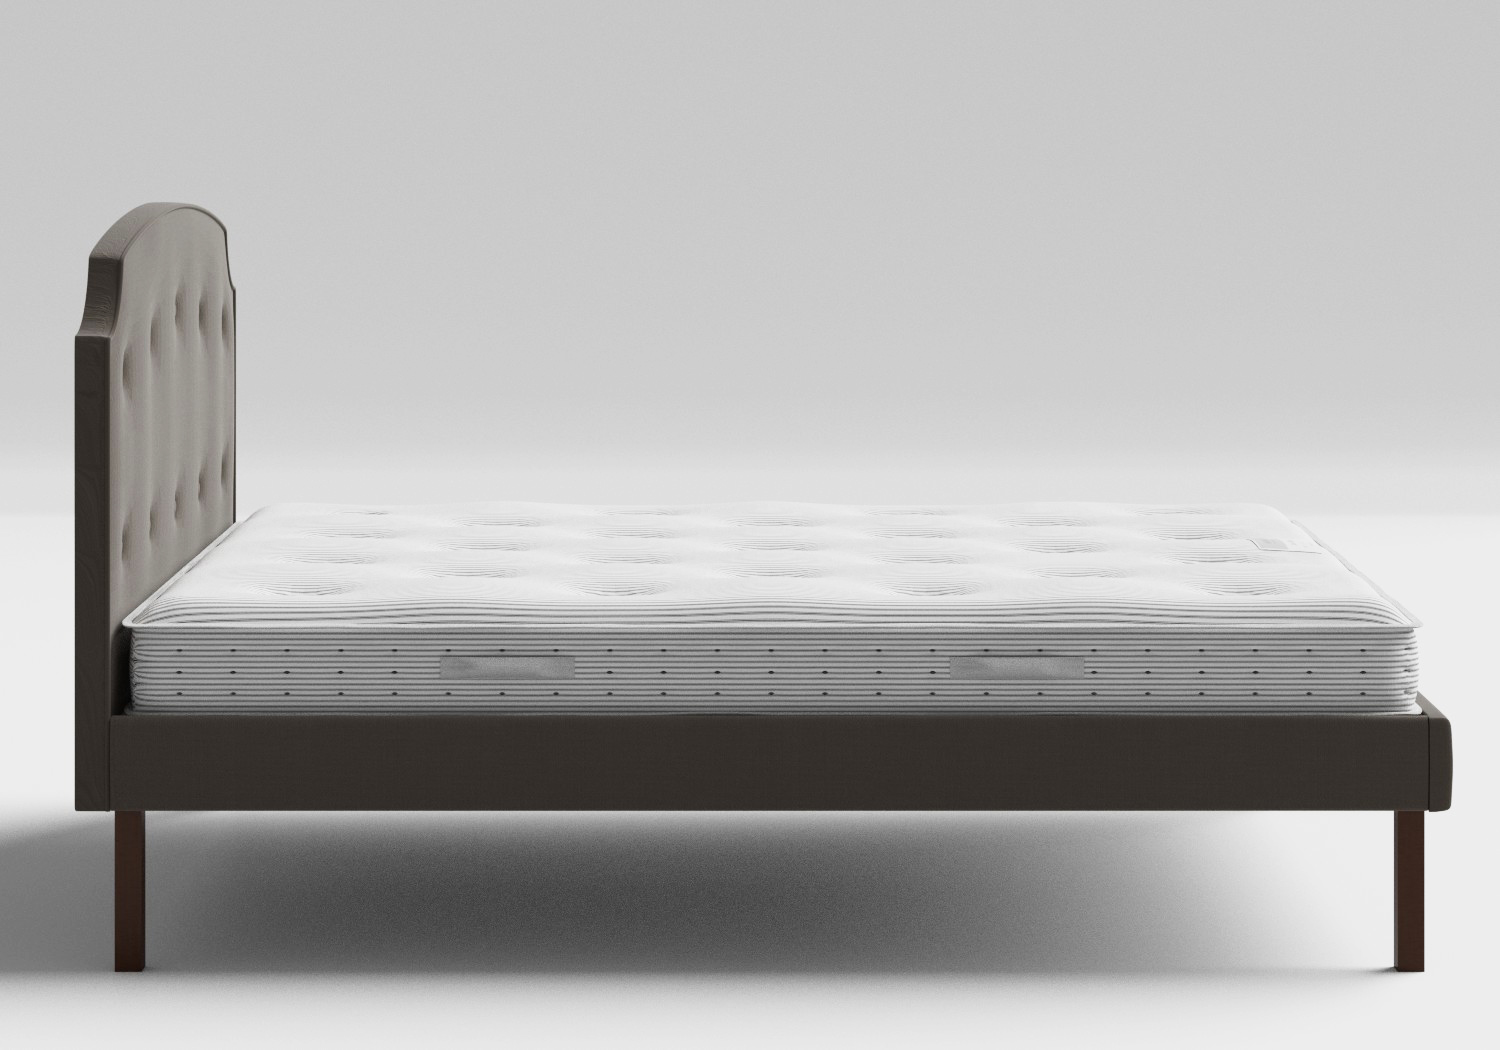 Kobe Upholstered Bed in Grey fabric with buttoning shown with Juno 1 mattress